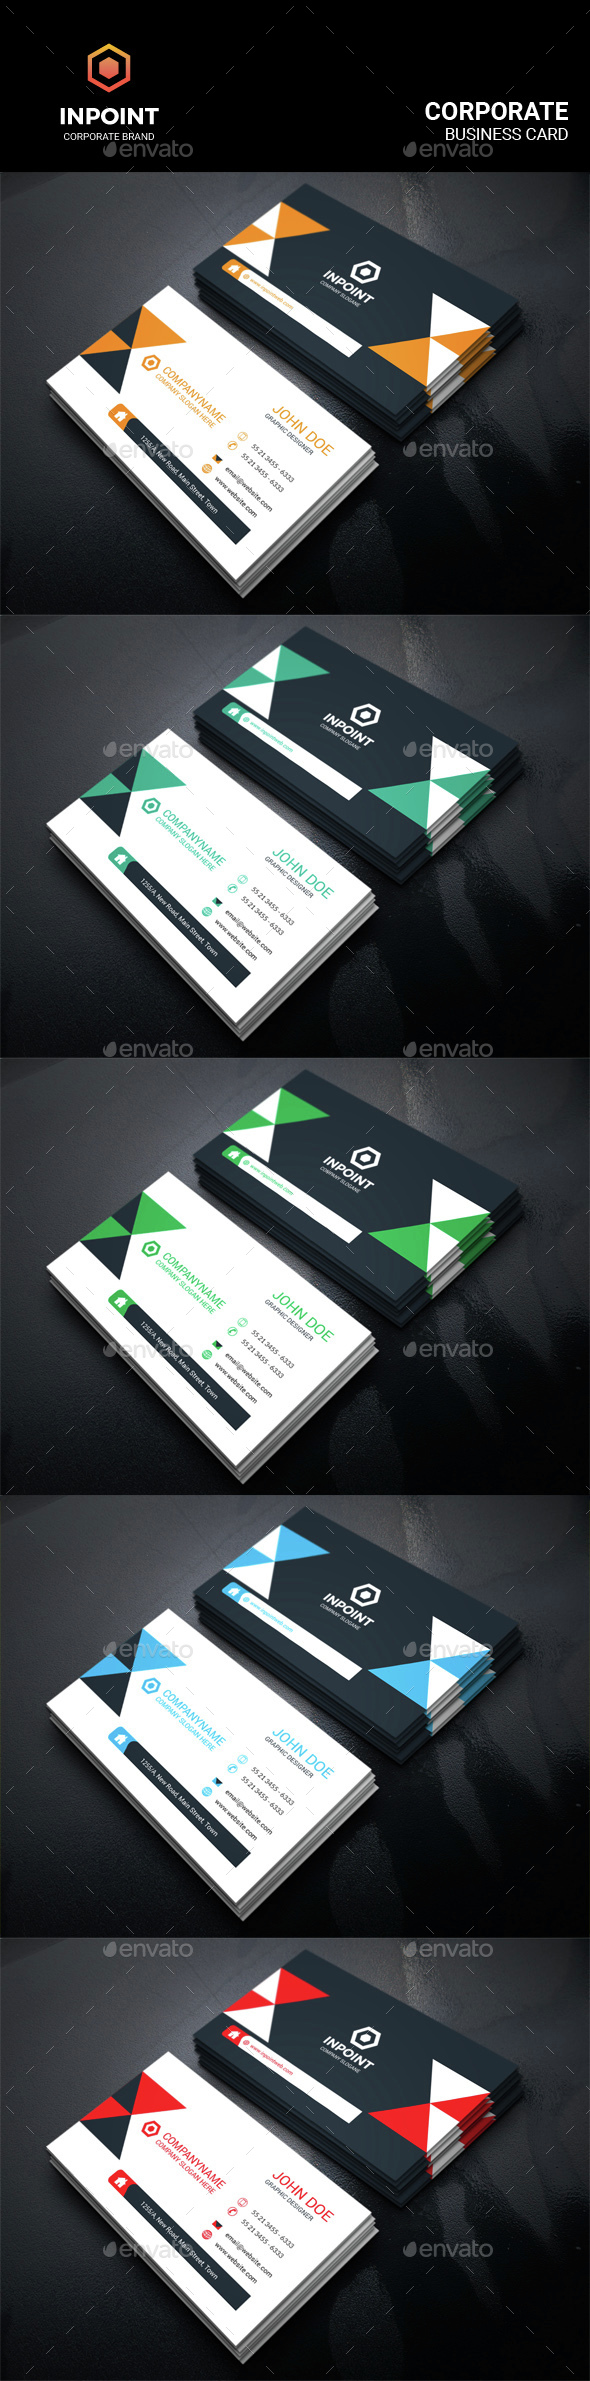 Inpoint_Corporate Business Card - Corporate Business Cards